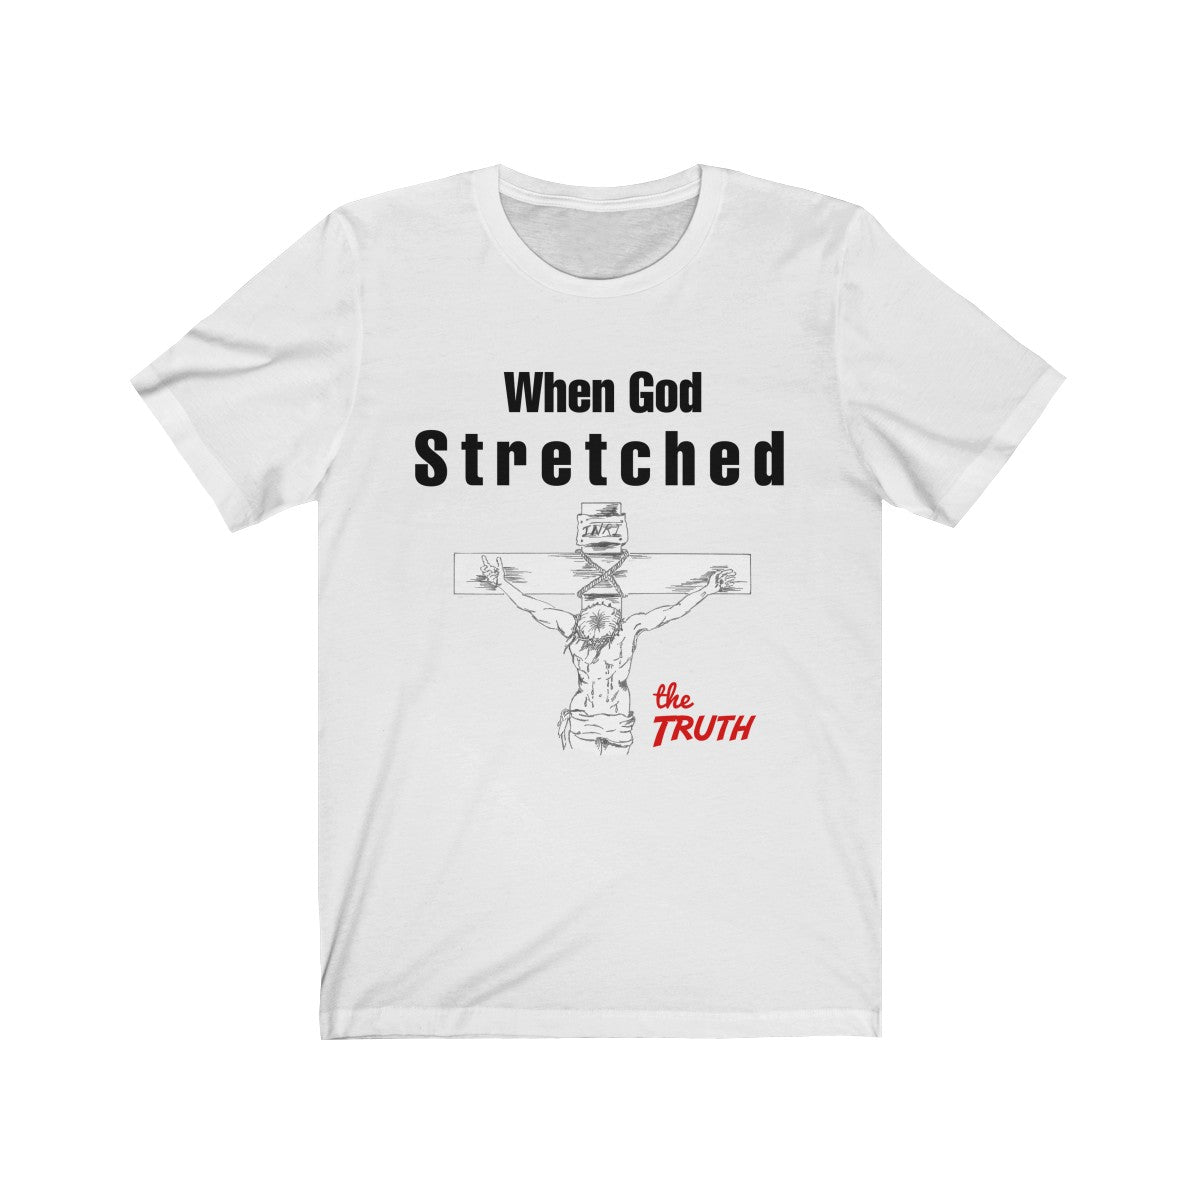 When God Stretched The Truth Christian T-Shirt. God can not lie but one day over 2,000 years ago He Stretched the Truth